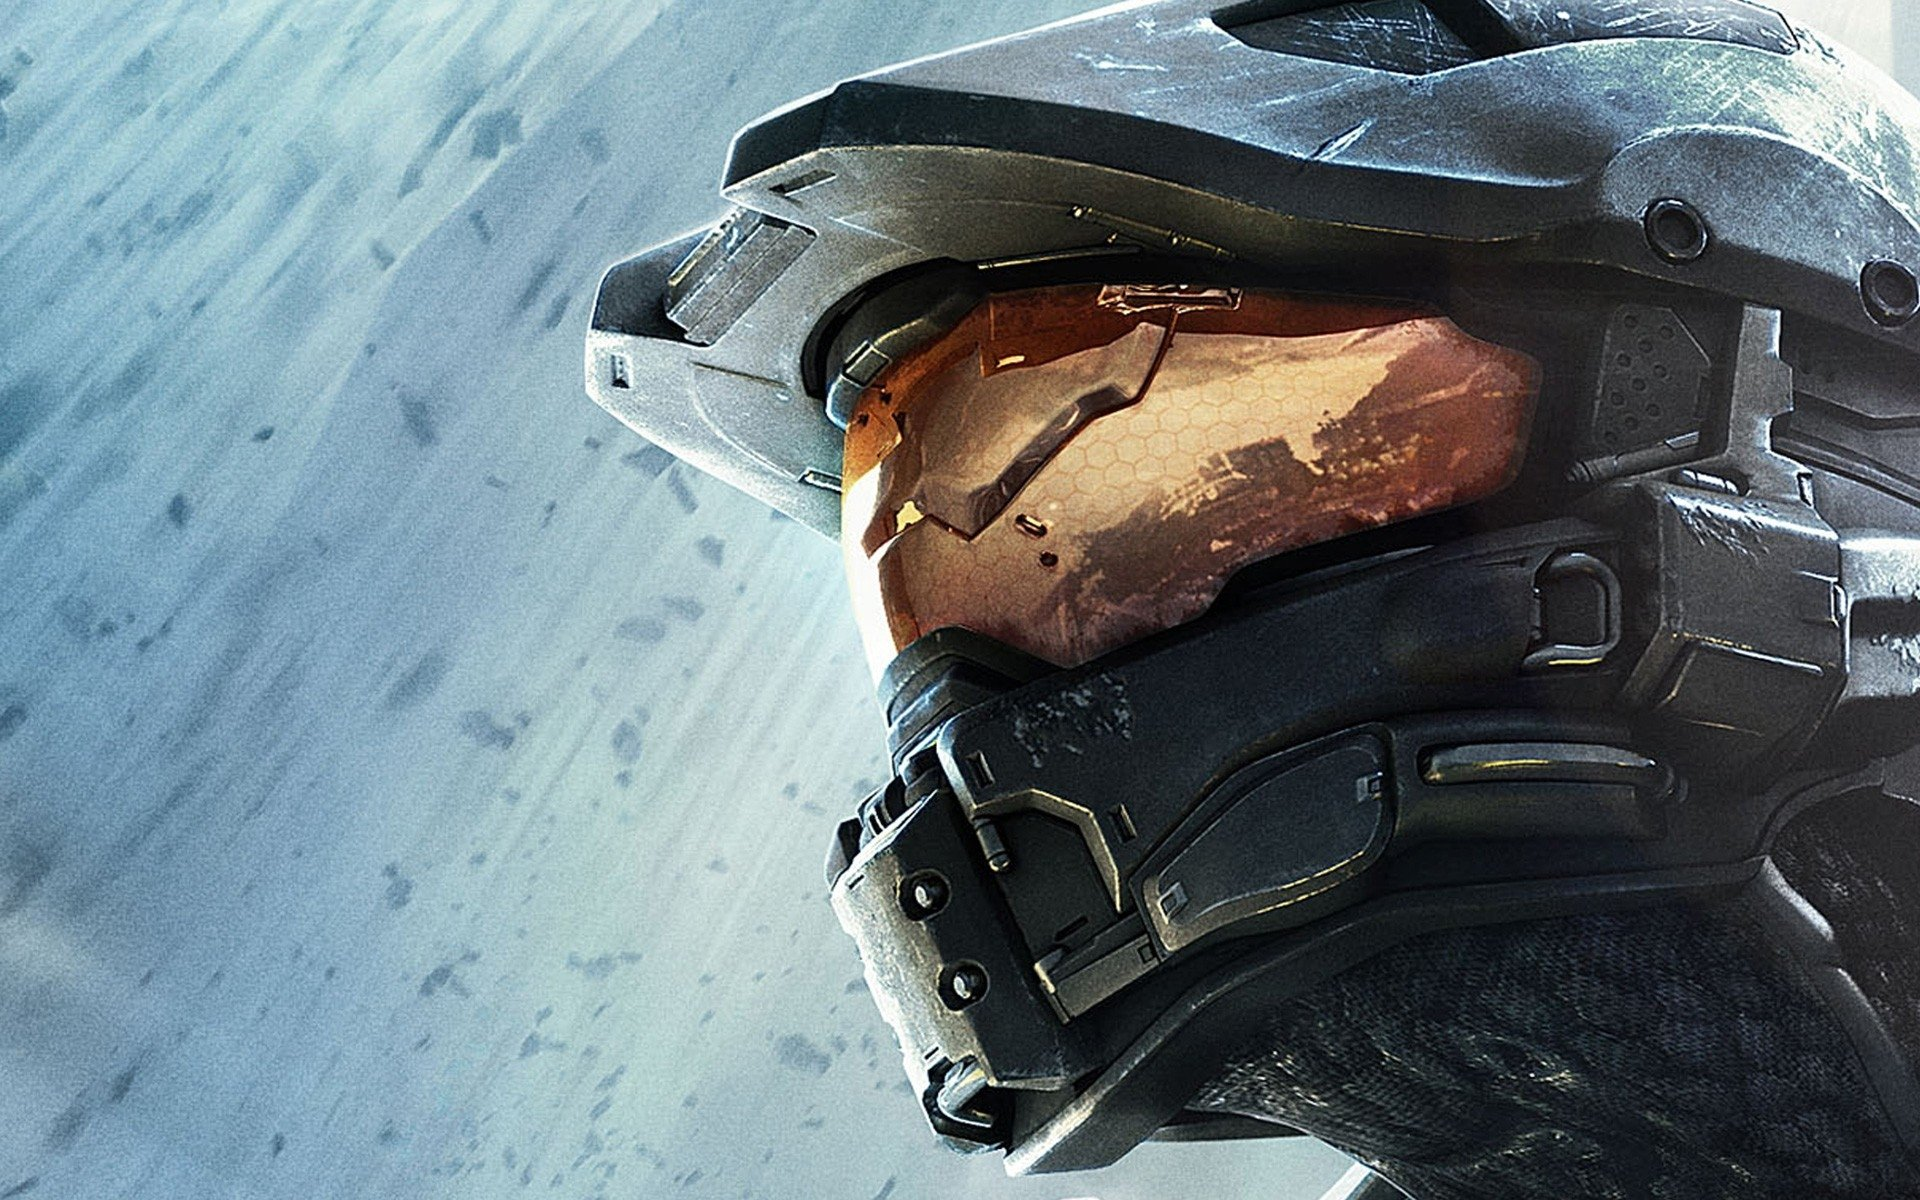 91 halo 4 hd wallpapers background images wallpaper abyss hd wallpaper background image id712805 1920x1200 video game halo 4 voltagebd Image collections